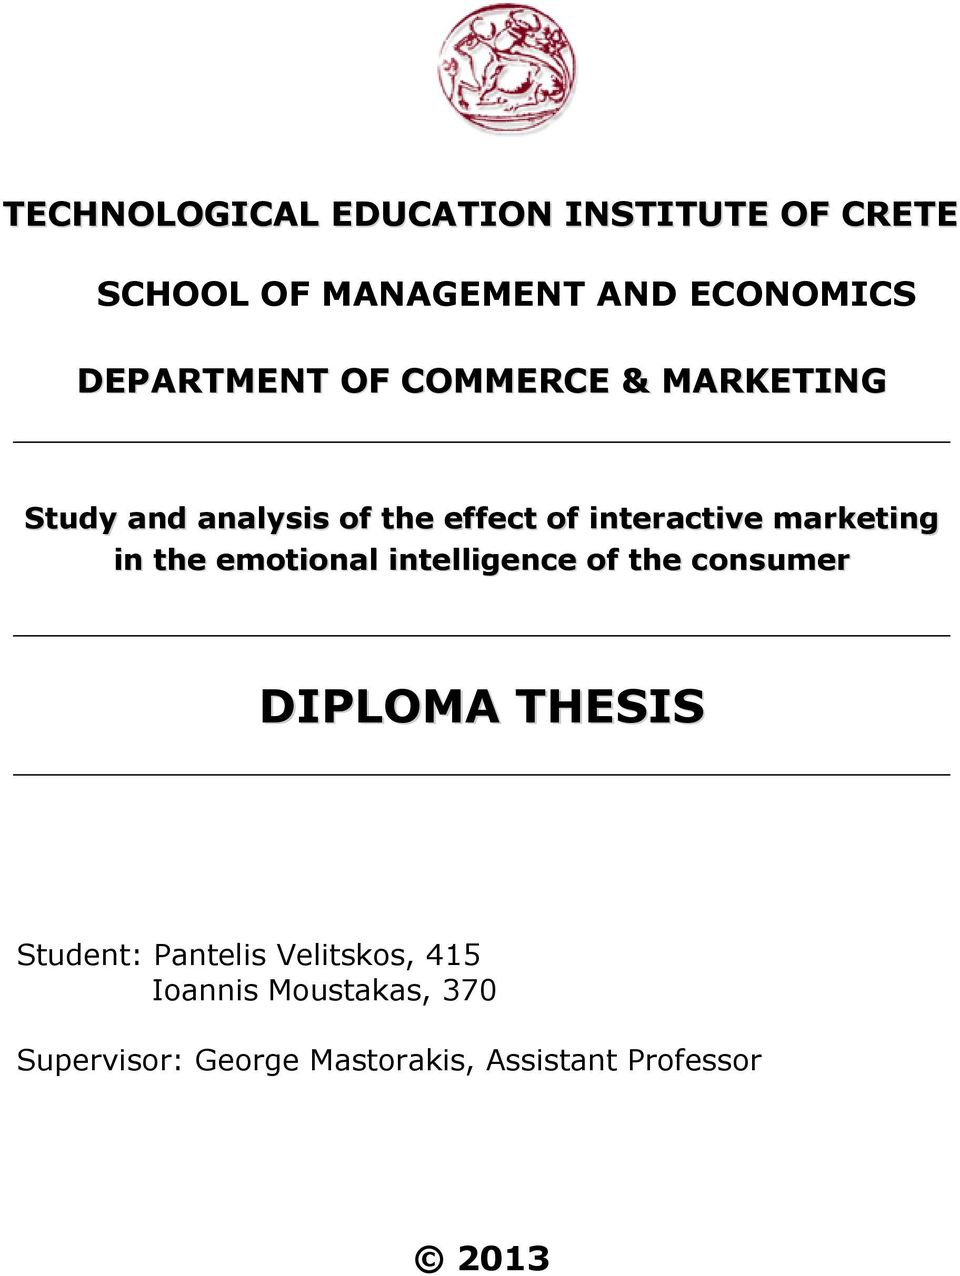 marketing in the emotional intelligence of the consumer DIPLOMA THESIS Student: